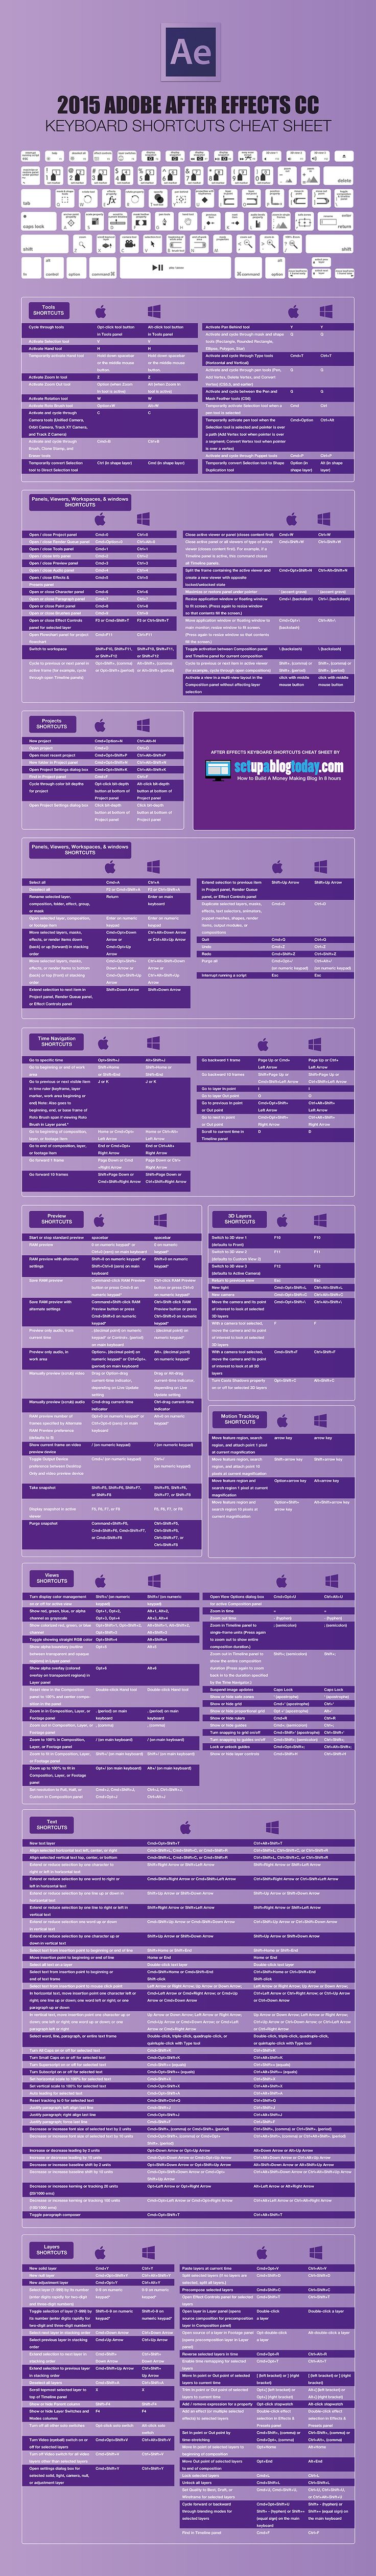 Speed Up Your Workflow in After Effects With This Cheat Sheet » ICE Digital Studios